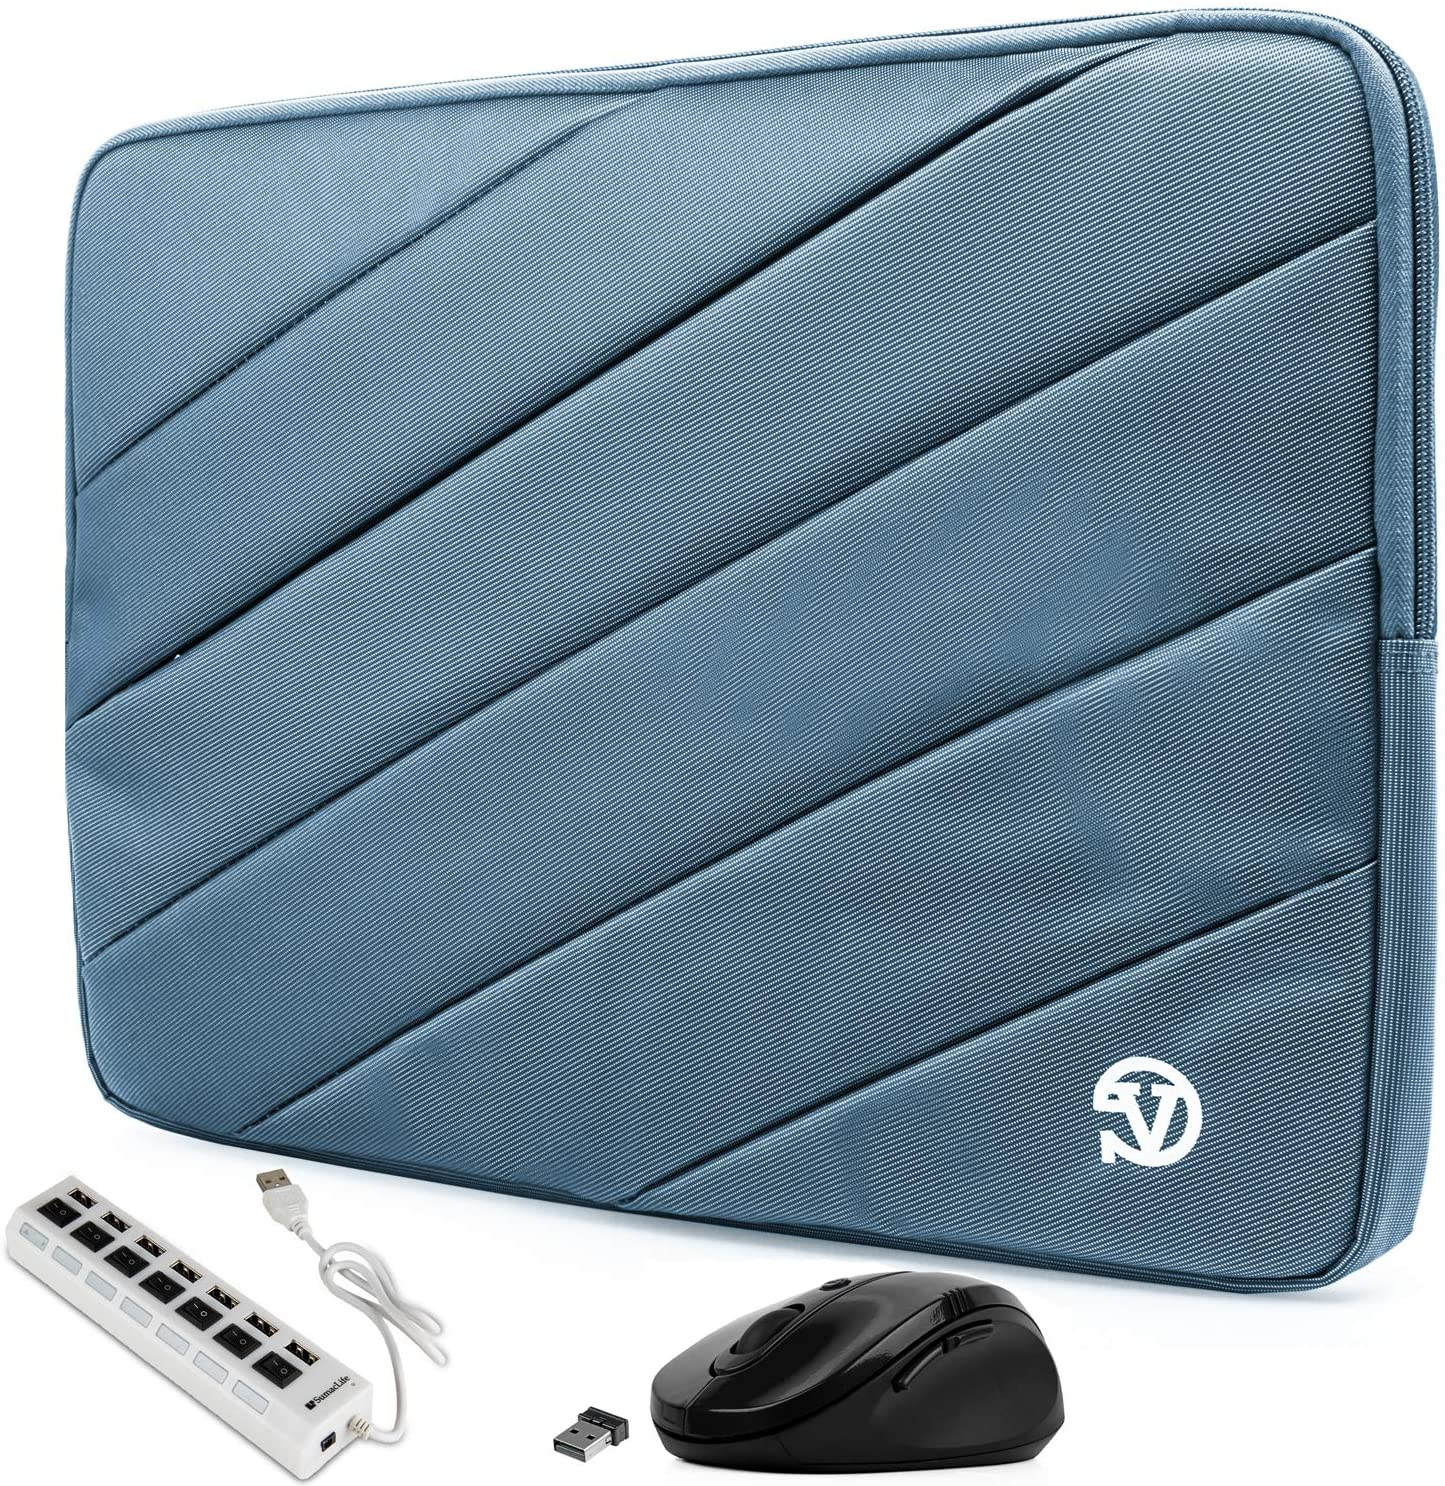 Shock Absorbing Blue Laptop Sleeve for Acer Aspire, ChromeBook, Nitro, Predator, Spin, Swift, Triton, V Nitro 14 to 15.6 inch (Includes USB Hub and Mouse)